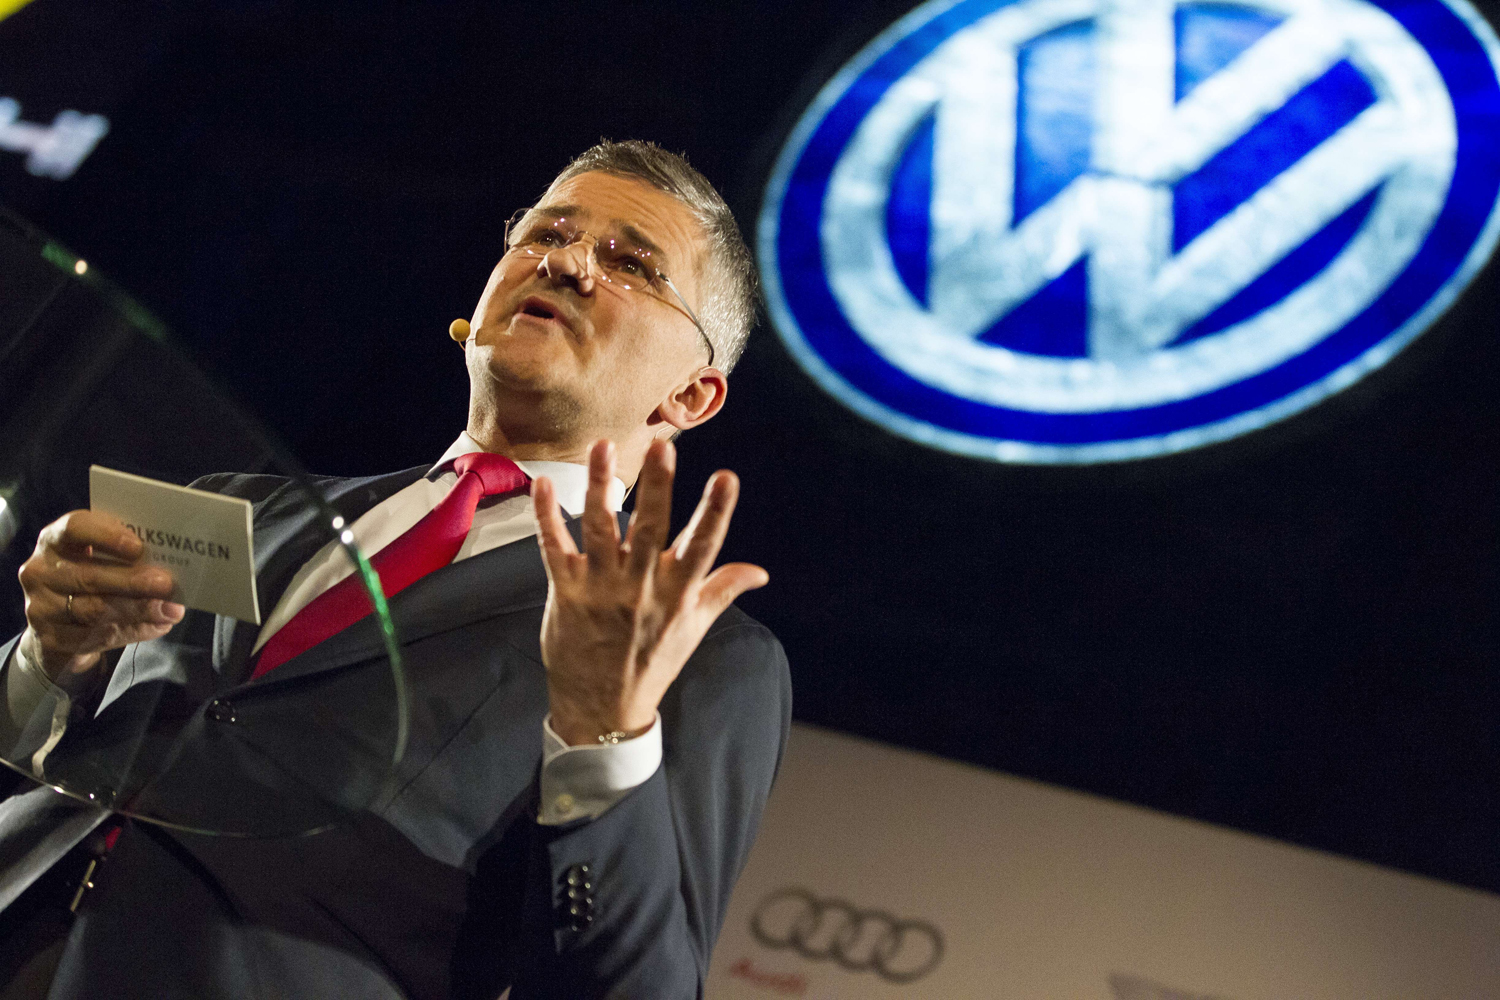 Michael Horn, President and CEO of Volkswagen Group of America, speaks at a press event on the eve of The North American International Auto Show in Detroit, Michigan, on Jan. 11, 2015.